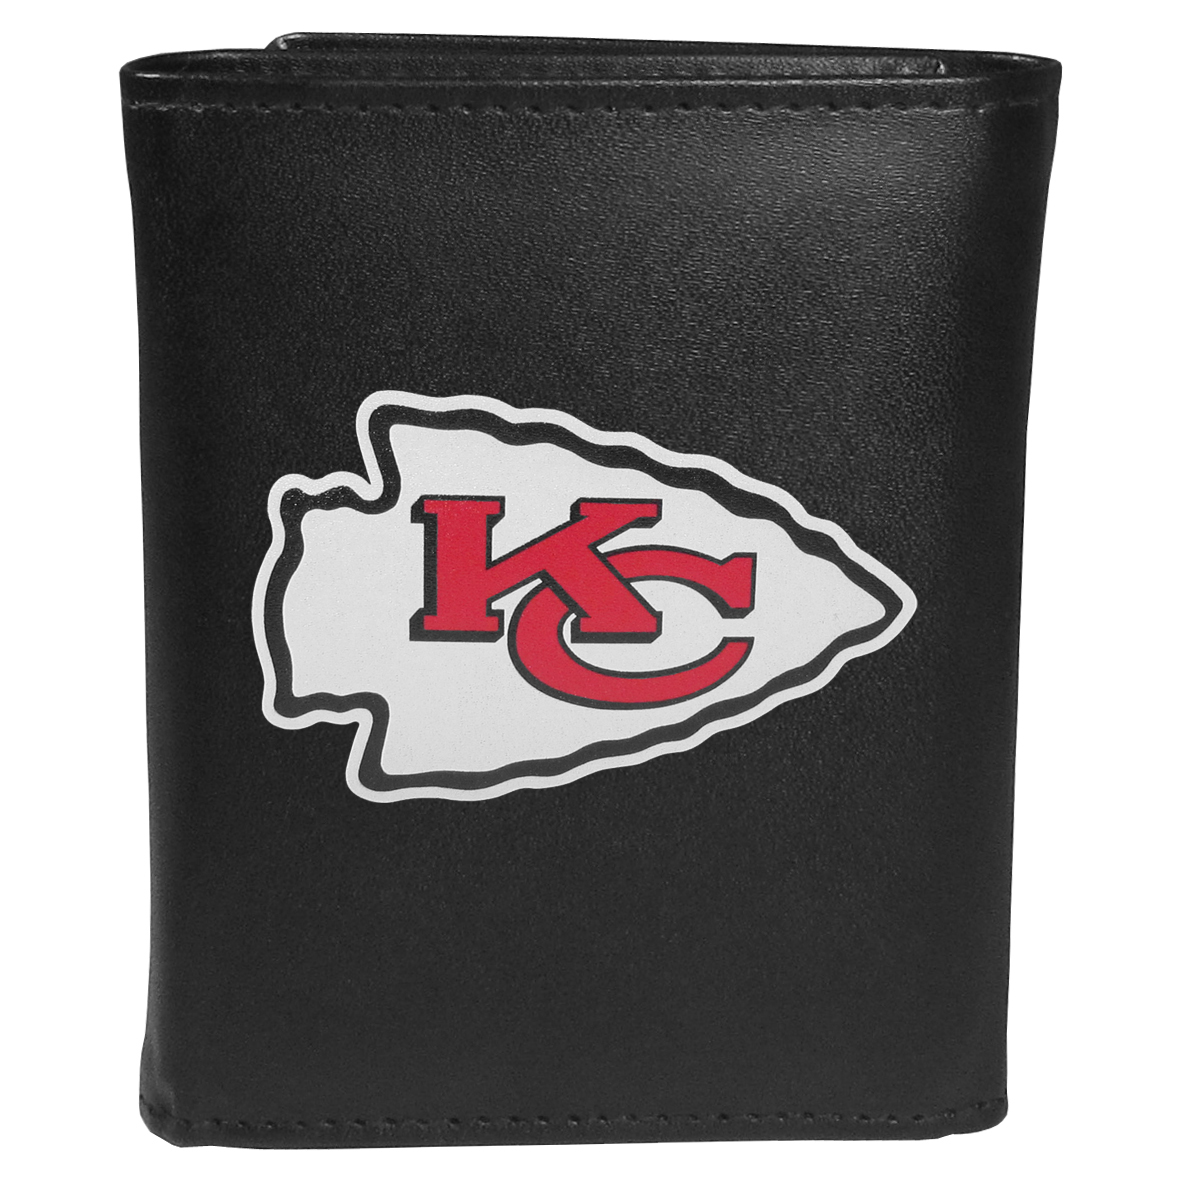 Kansas City Chiefs Tri-fold Wallet Large Logo - Sports fans do not have to sacrifice style with this classic tri-fold wallet that sports theKansas City Chiefs?extra large logo. This men's fashion accessory has a leather grain look and expert craftmanship for a quality wallet at a great price. The wallet features inner credit card slots, windowed ID slot and a large billfold pocket. The front of the wallet features an extra large printed team logo.